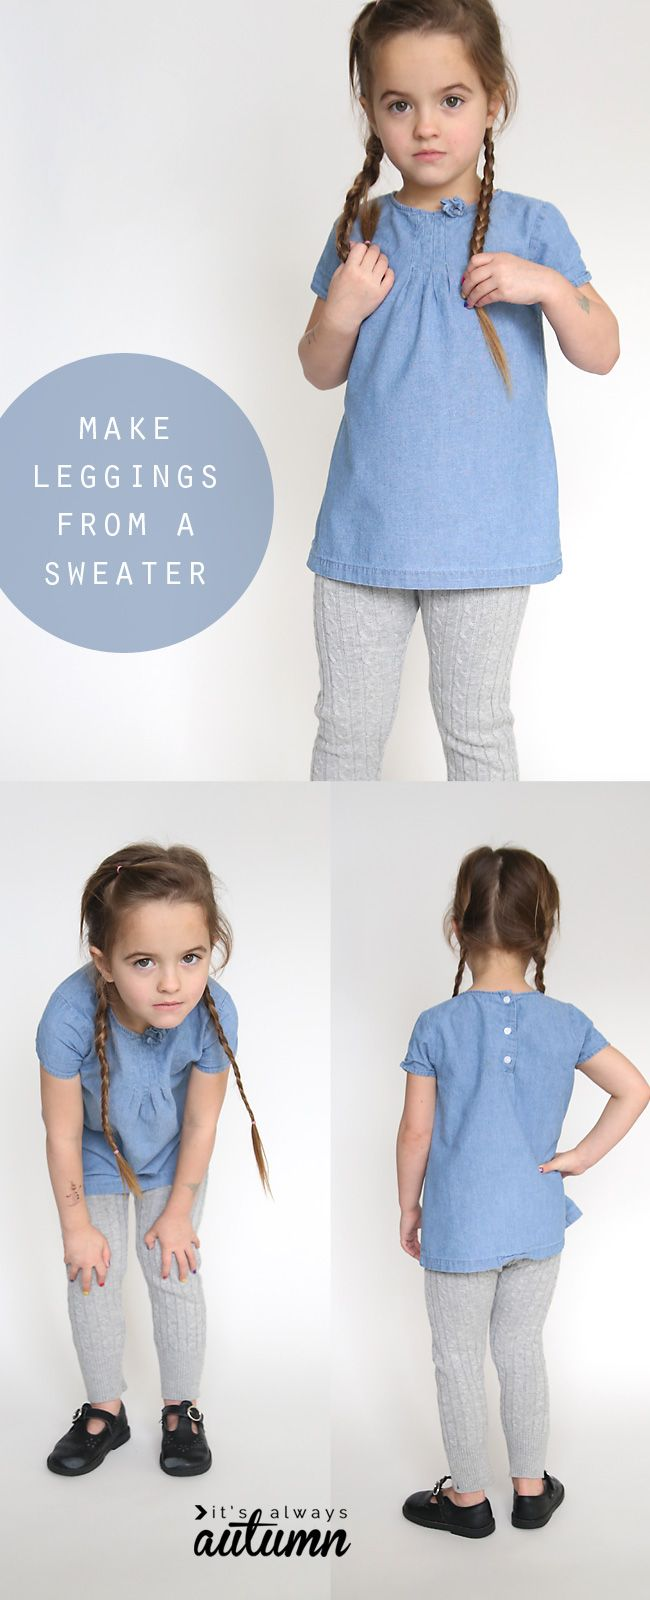 She made leggings for her daughter from old sweaters - they look so cozy!  The sewing tutorial looks really easy c0860808d